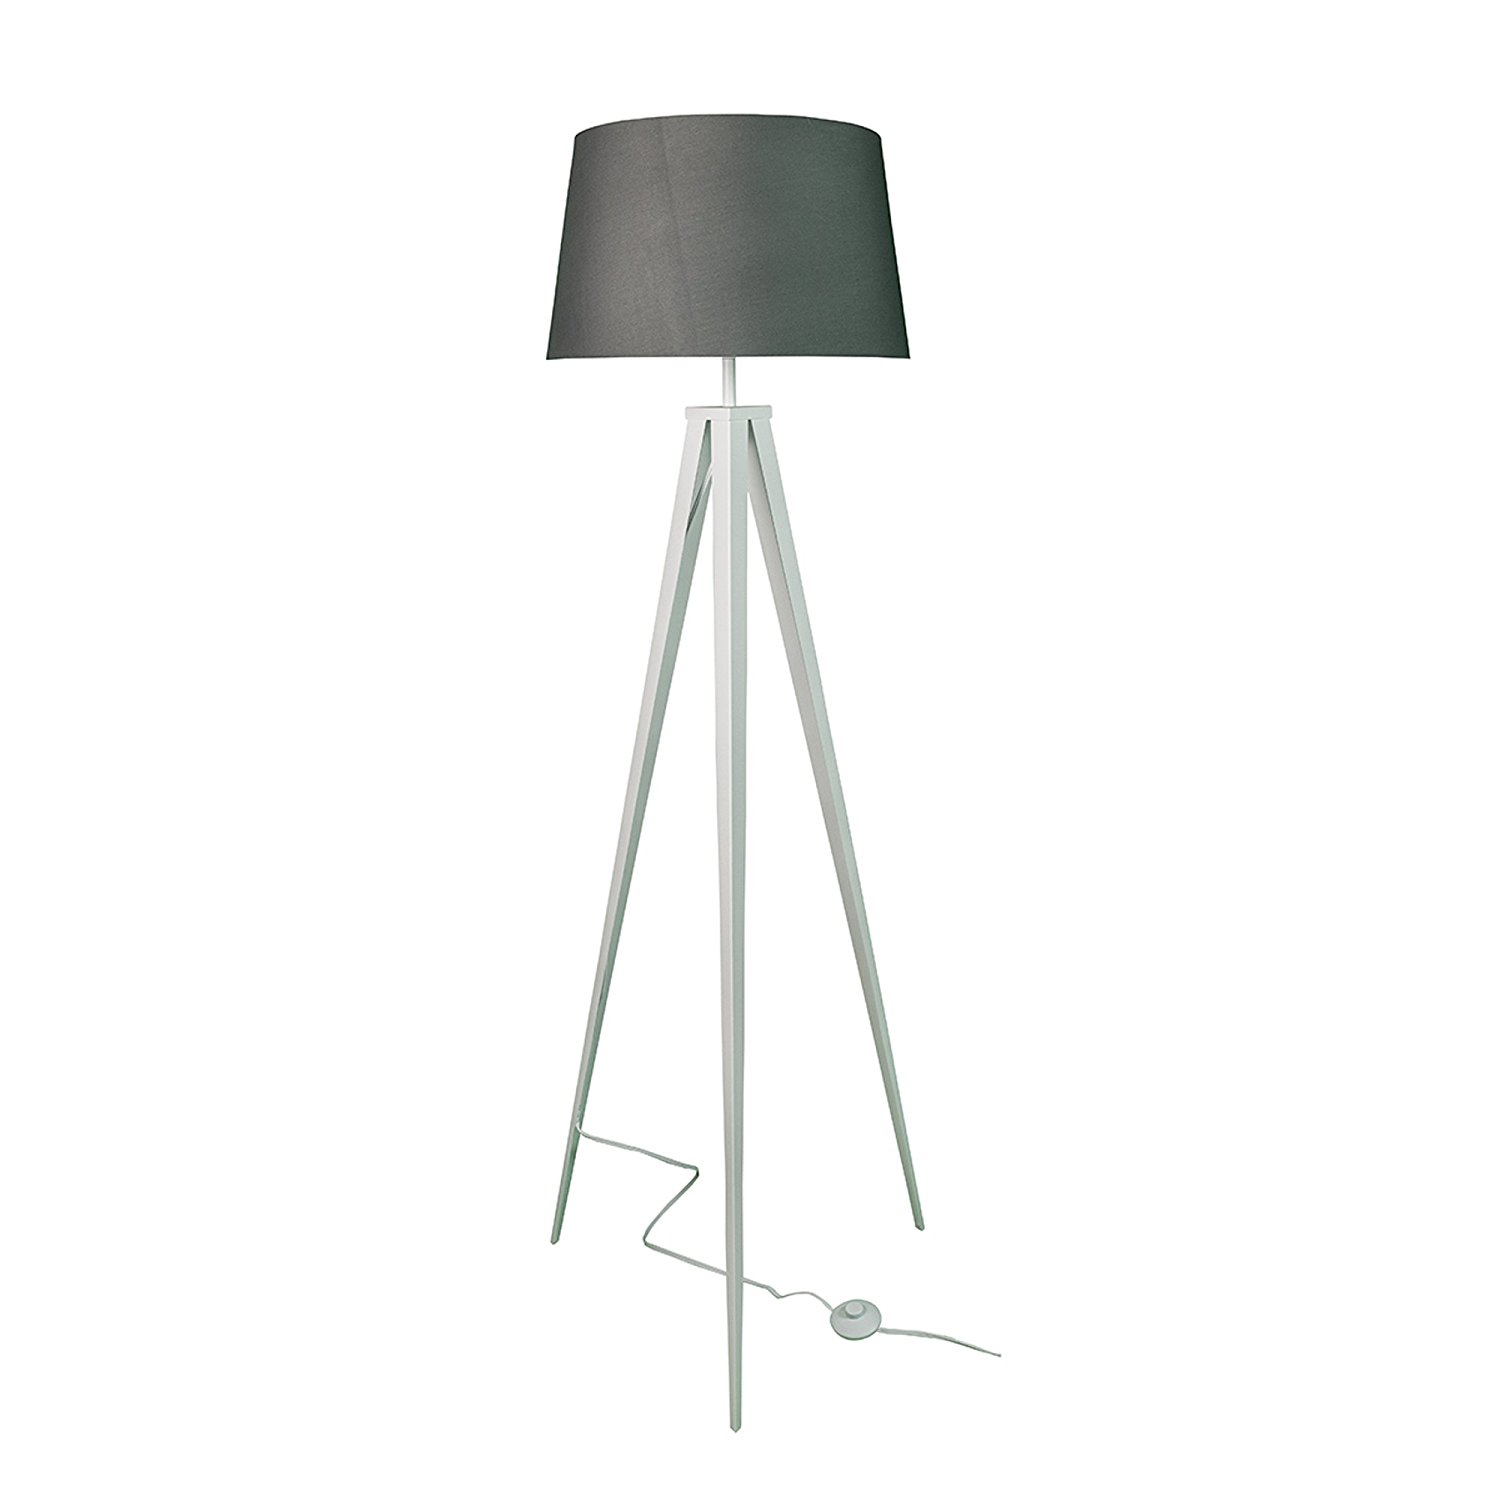 Euro Style Collection Berlin Floor Lamp w/Fabric Lampshade (Tall) Modern, Minimalist Tripod Standing Light | Living Room, Bedroom, Office (White-Grey)